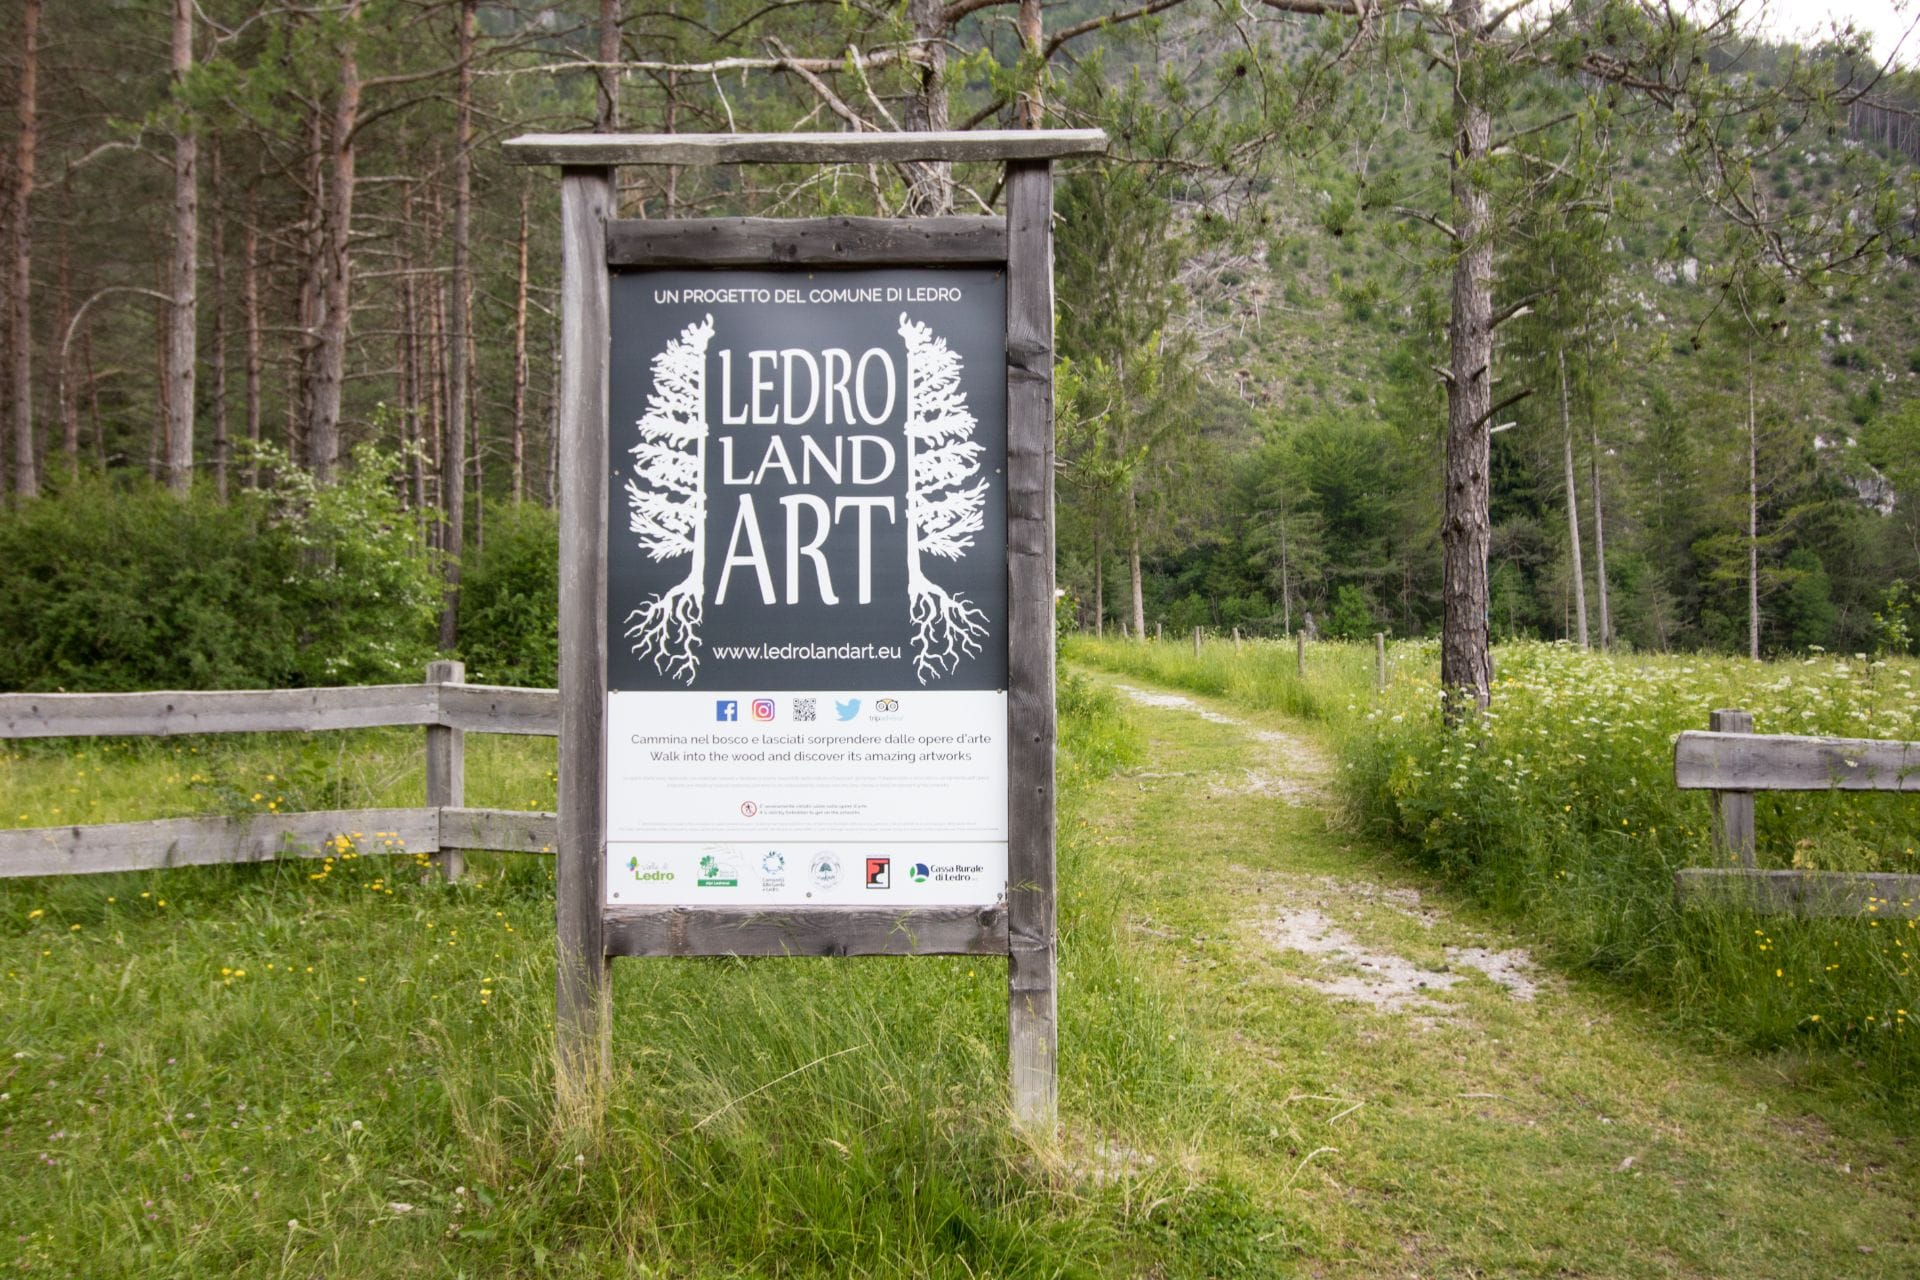 sign-for-ledro-land-art-in-the-woods